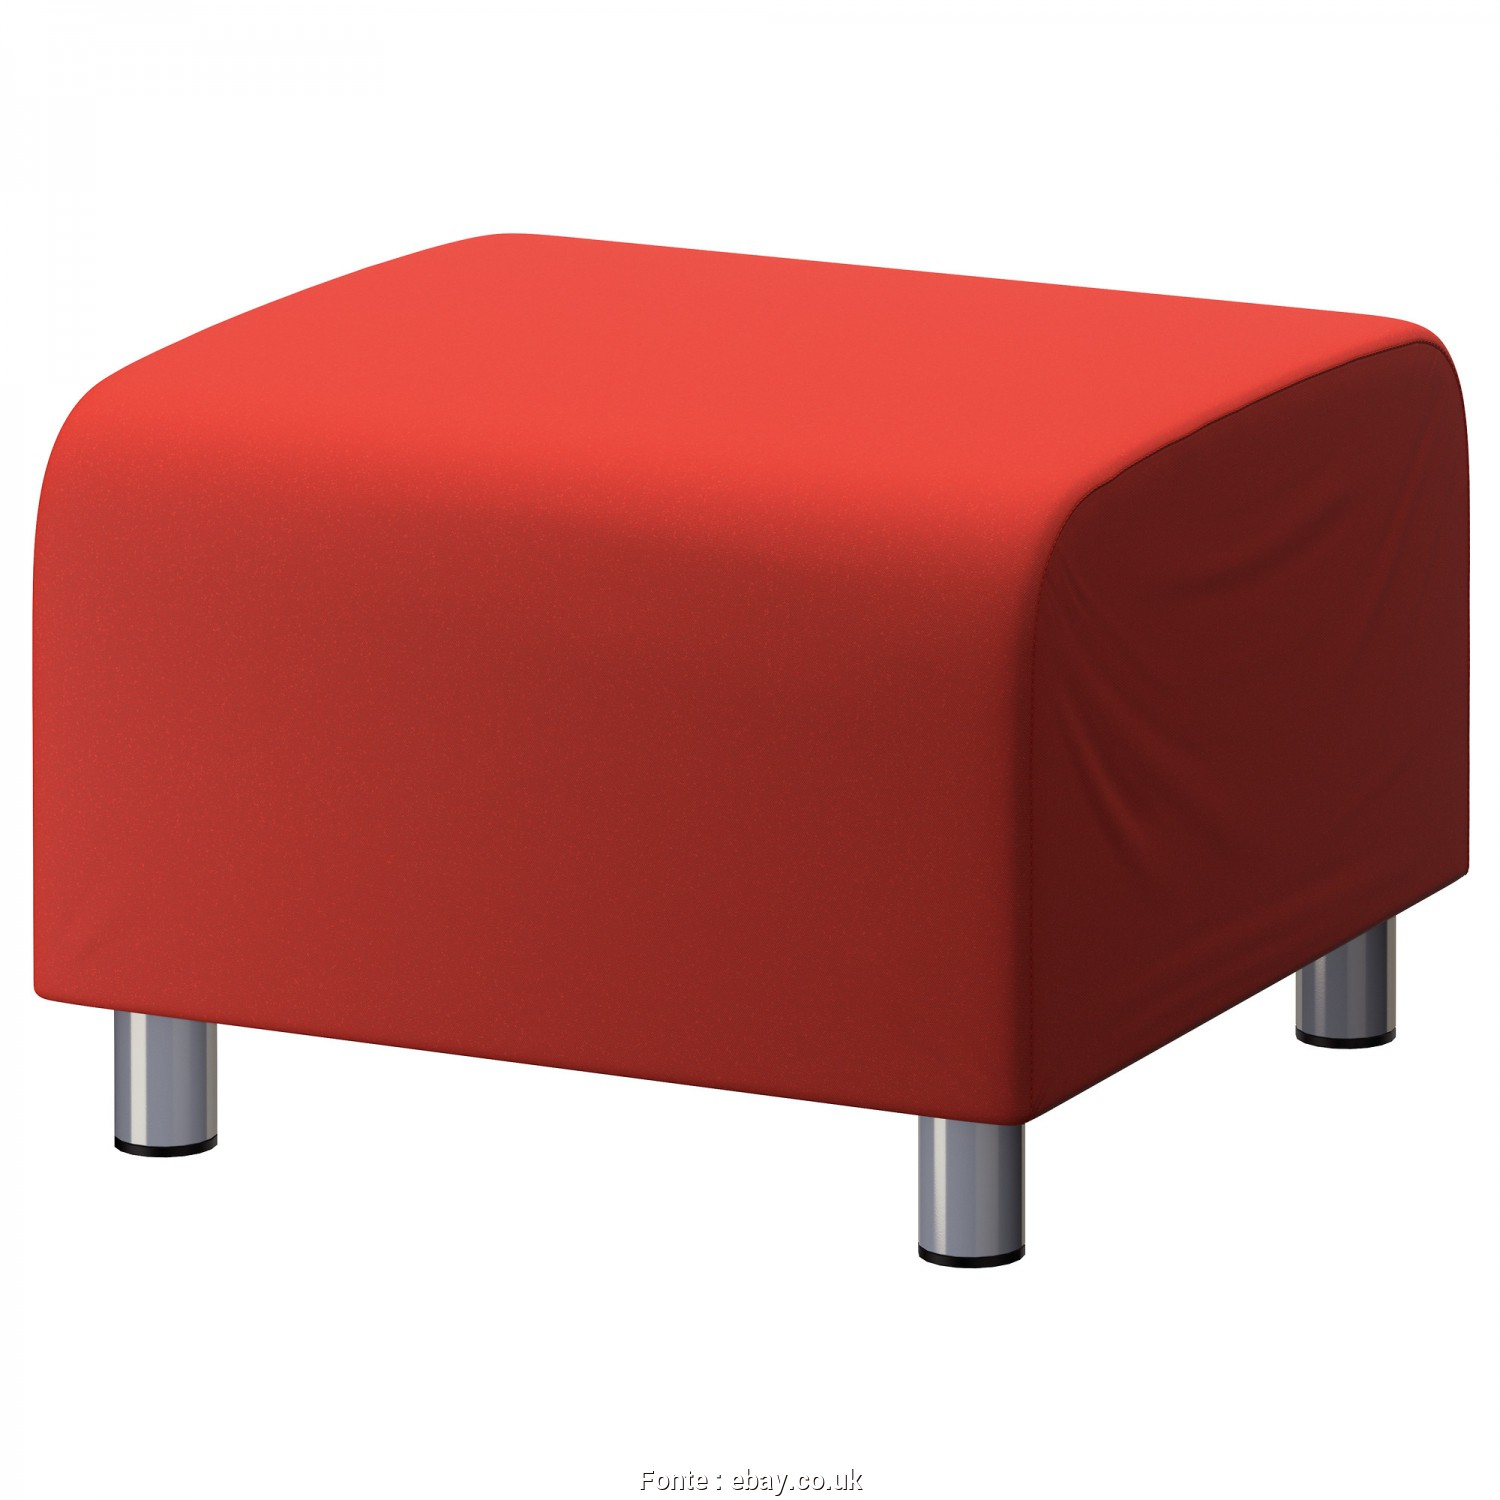 Klippan Ikea, Affascinante Details About, Cotton Custom Slip Cover, Ikea Klippan Footstool Sofa Cover Foot Stool